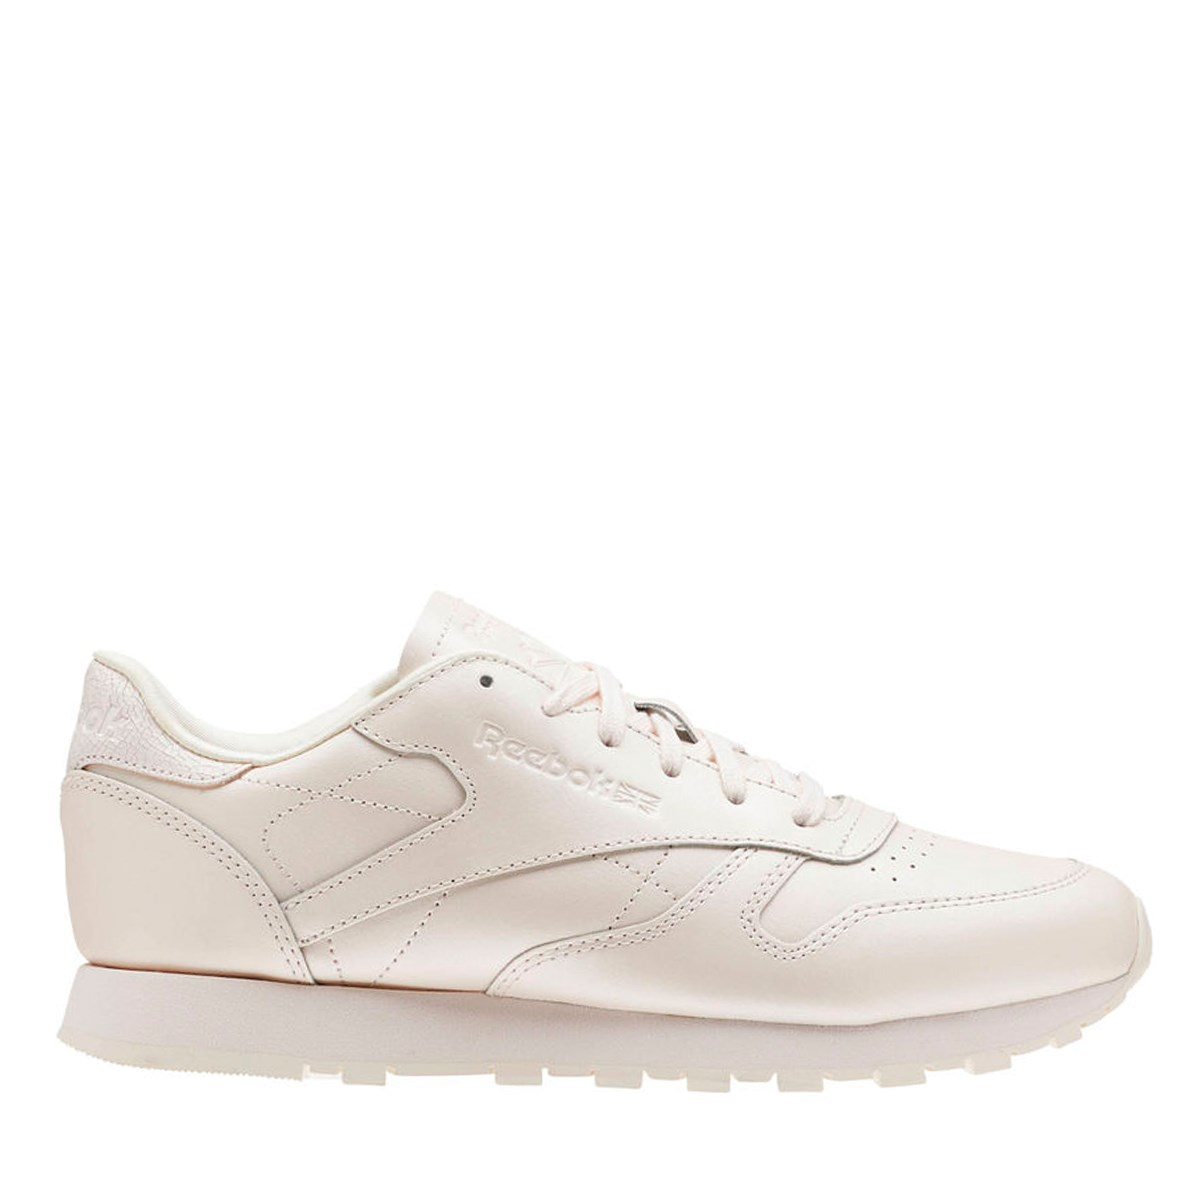 97935e4277cb Women's Classic Leather Sneaker in Light Pink. Previous. default view;  ALT1; ALT2